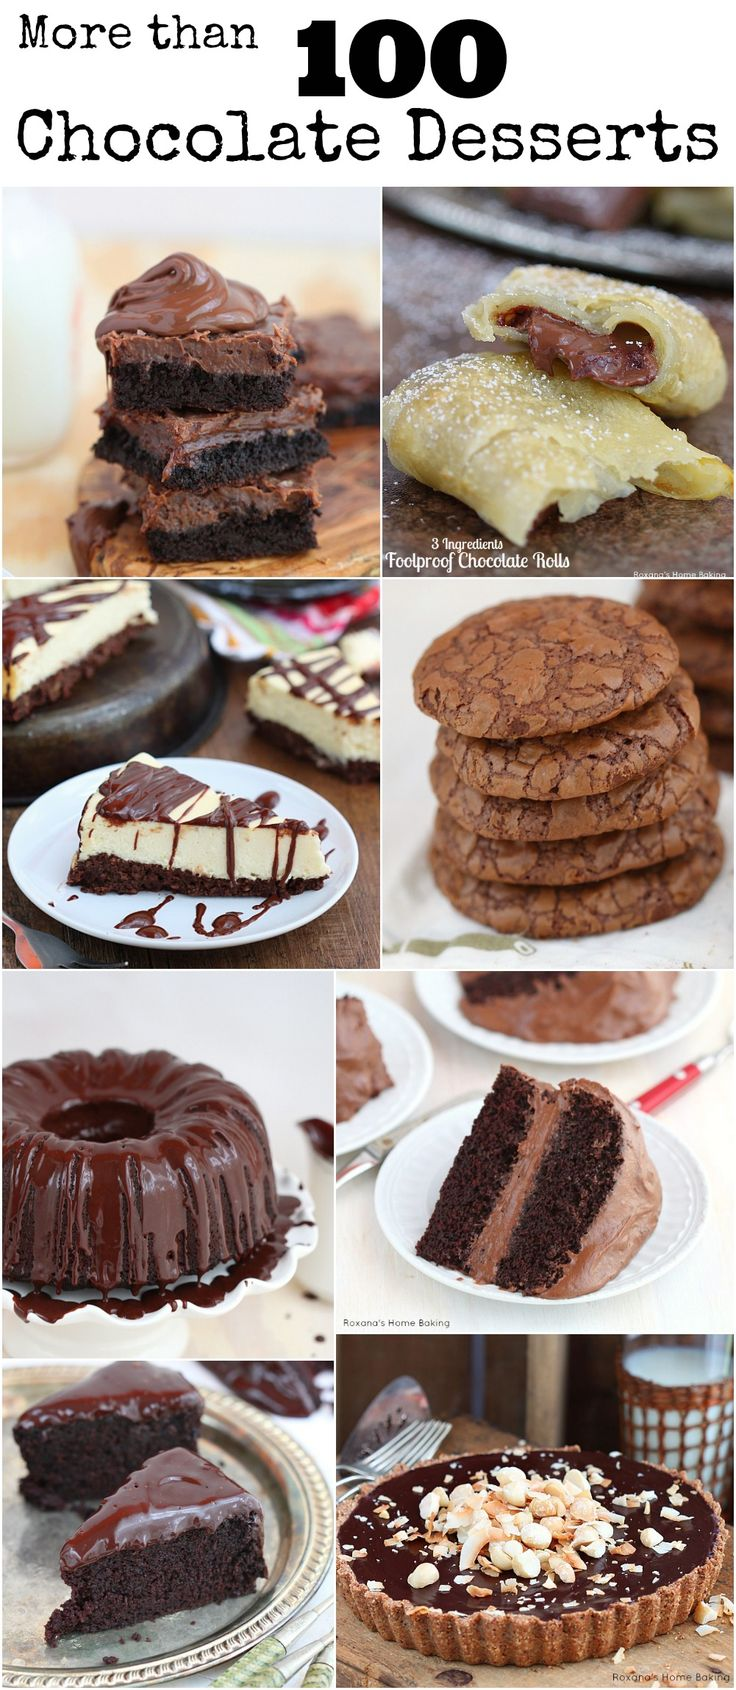 More than 100 Chocolate Desserts Recipes - either you're looking for a decadent dessert or just a quick chocolate fix, these desserts will sure satisfy your cravings